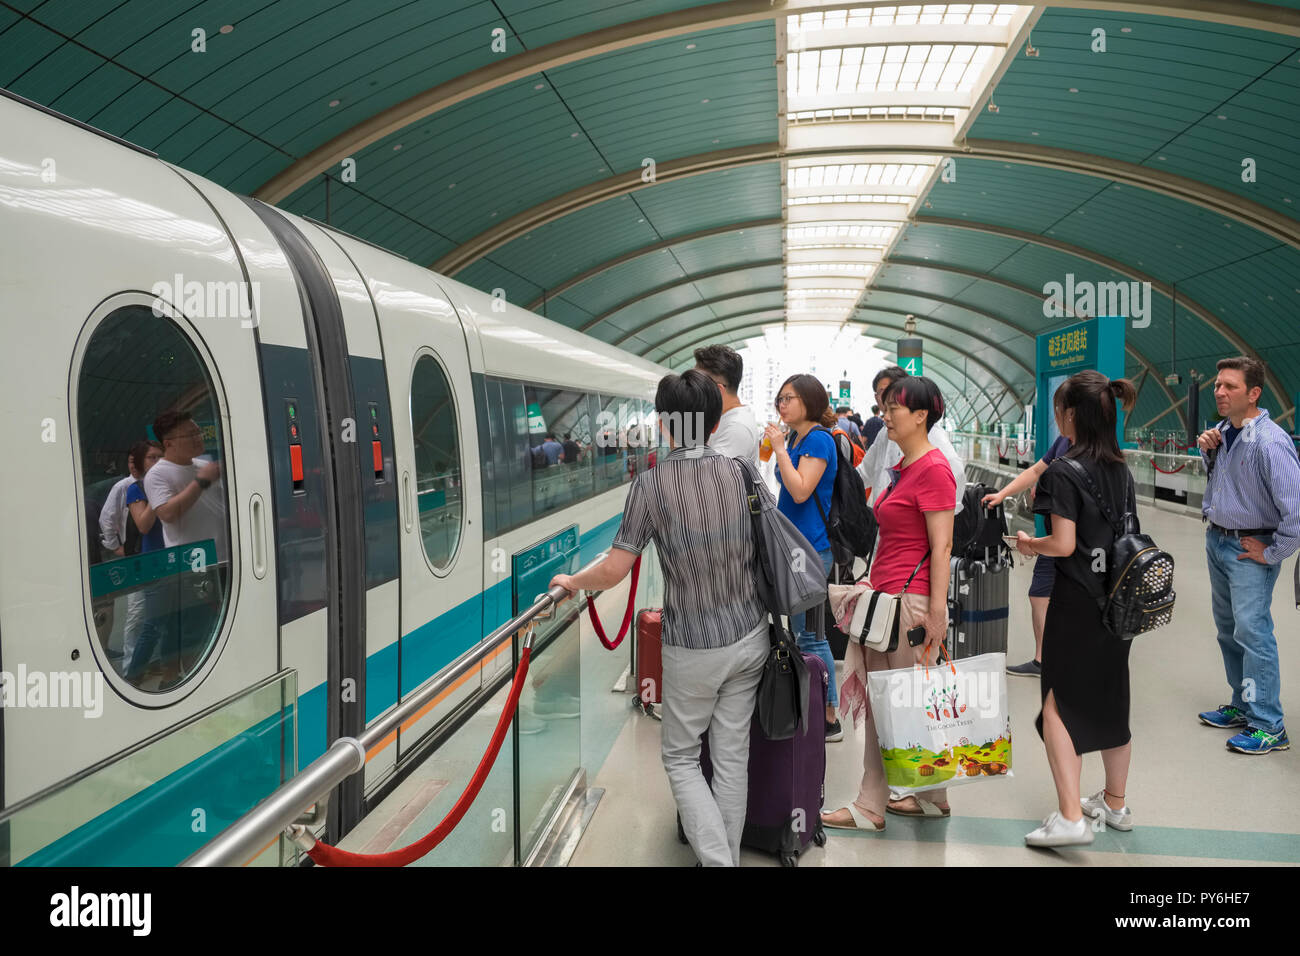 Passengers boarding a Maglev train in Shanghai, China, Asia - Stock Image